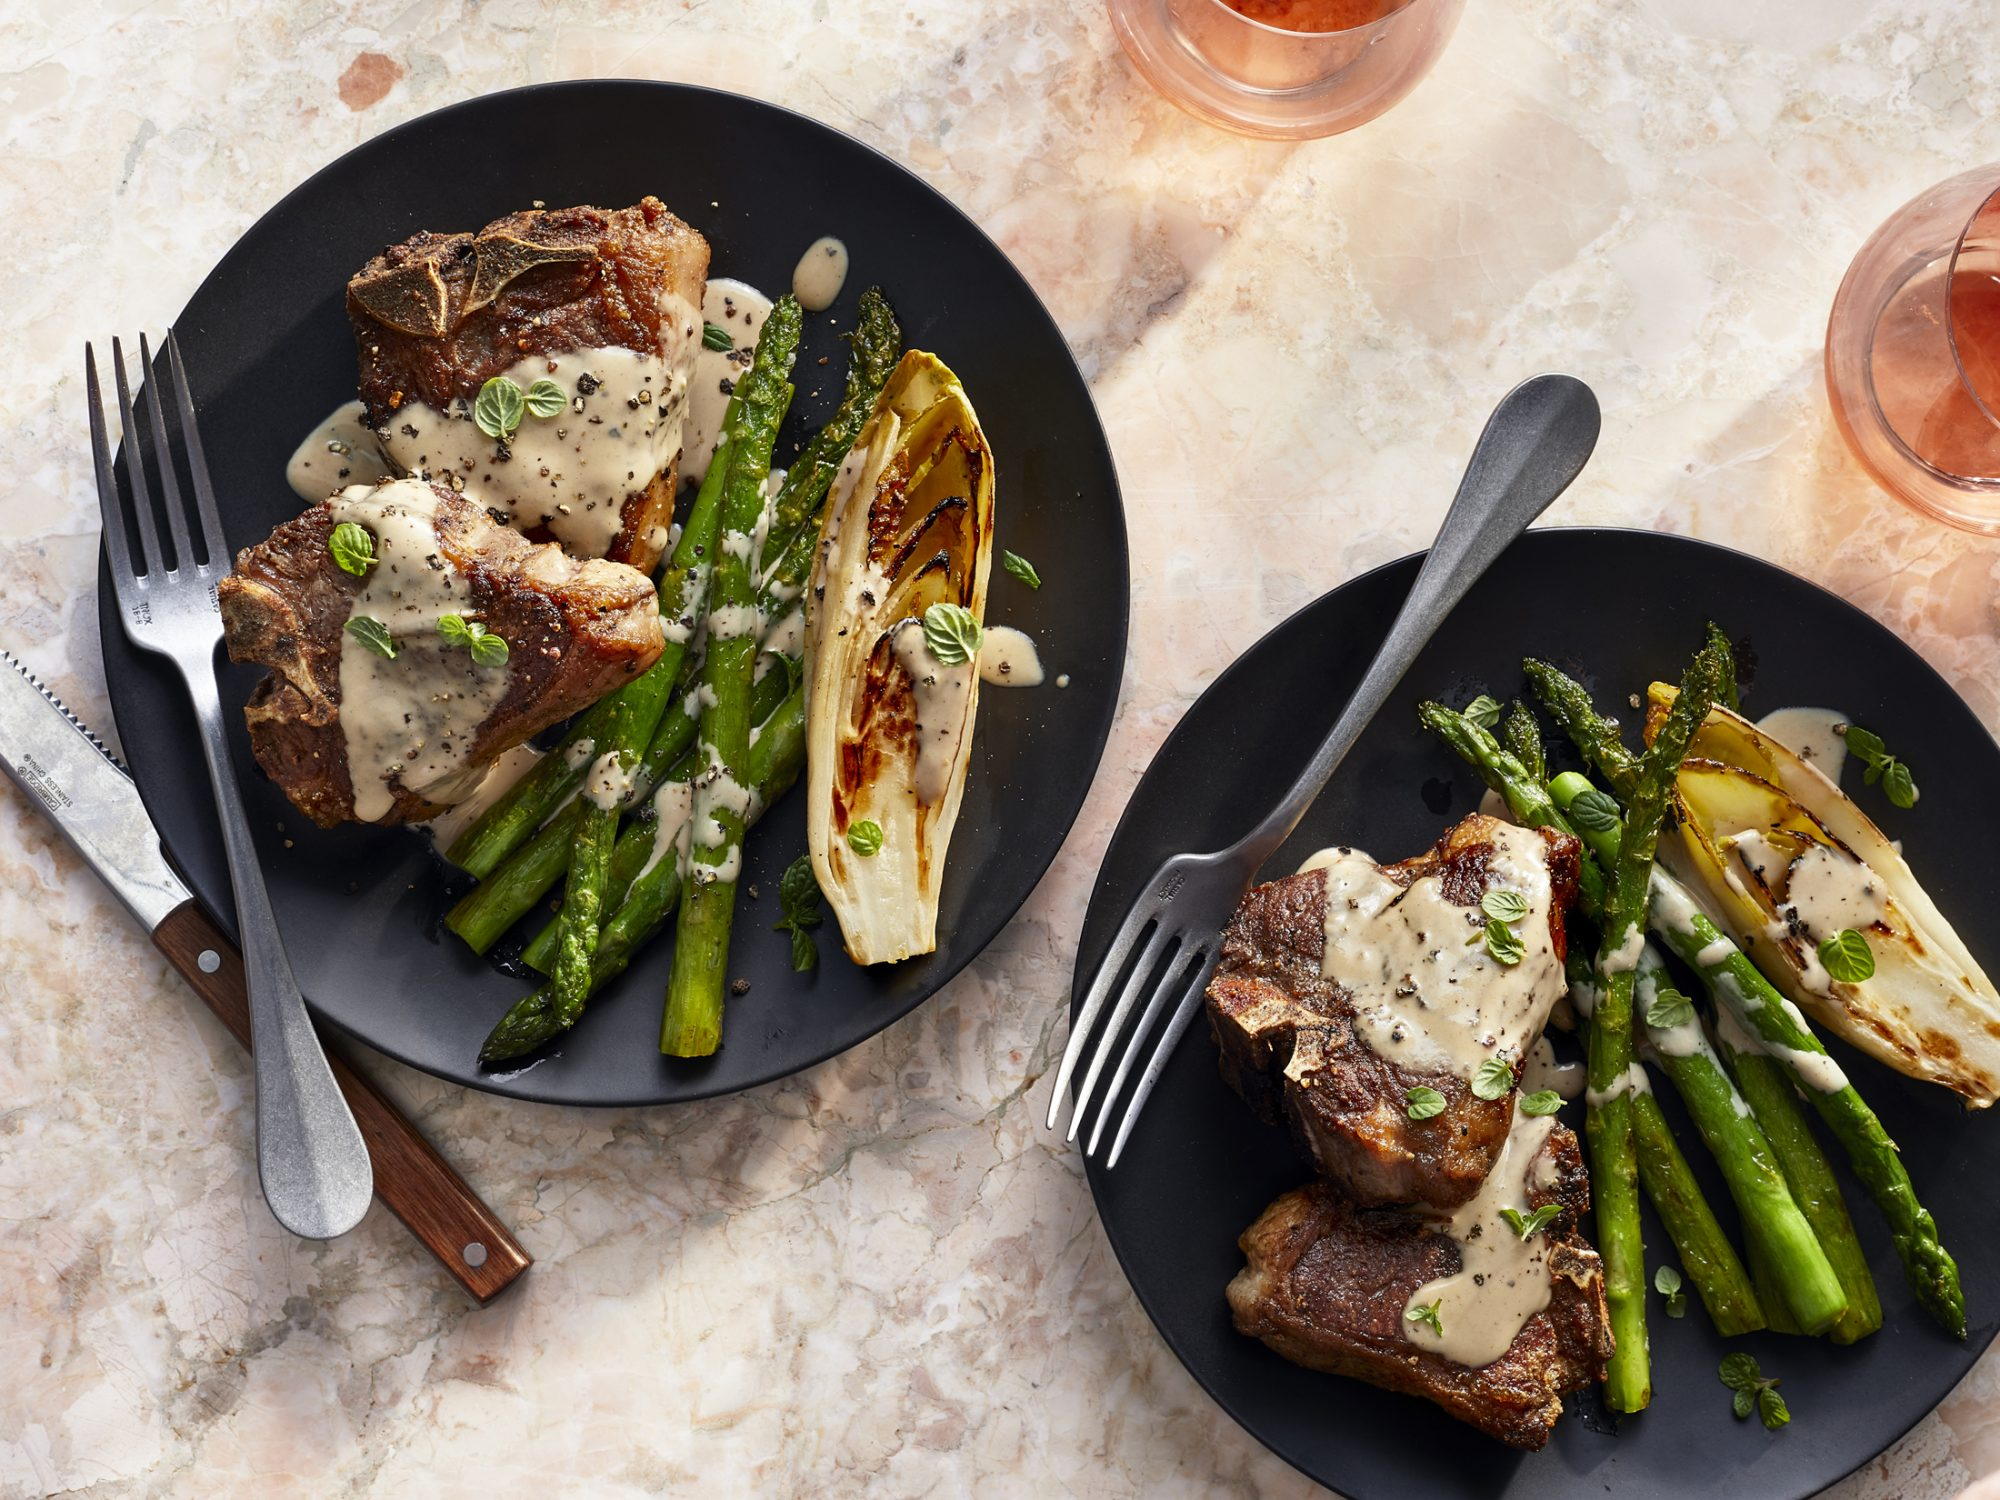 Seared Lamb Chops with Seared Endive, Asparagus, and Tahini Dressing